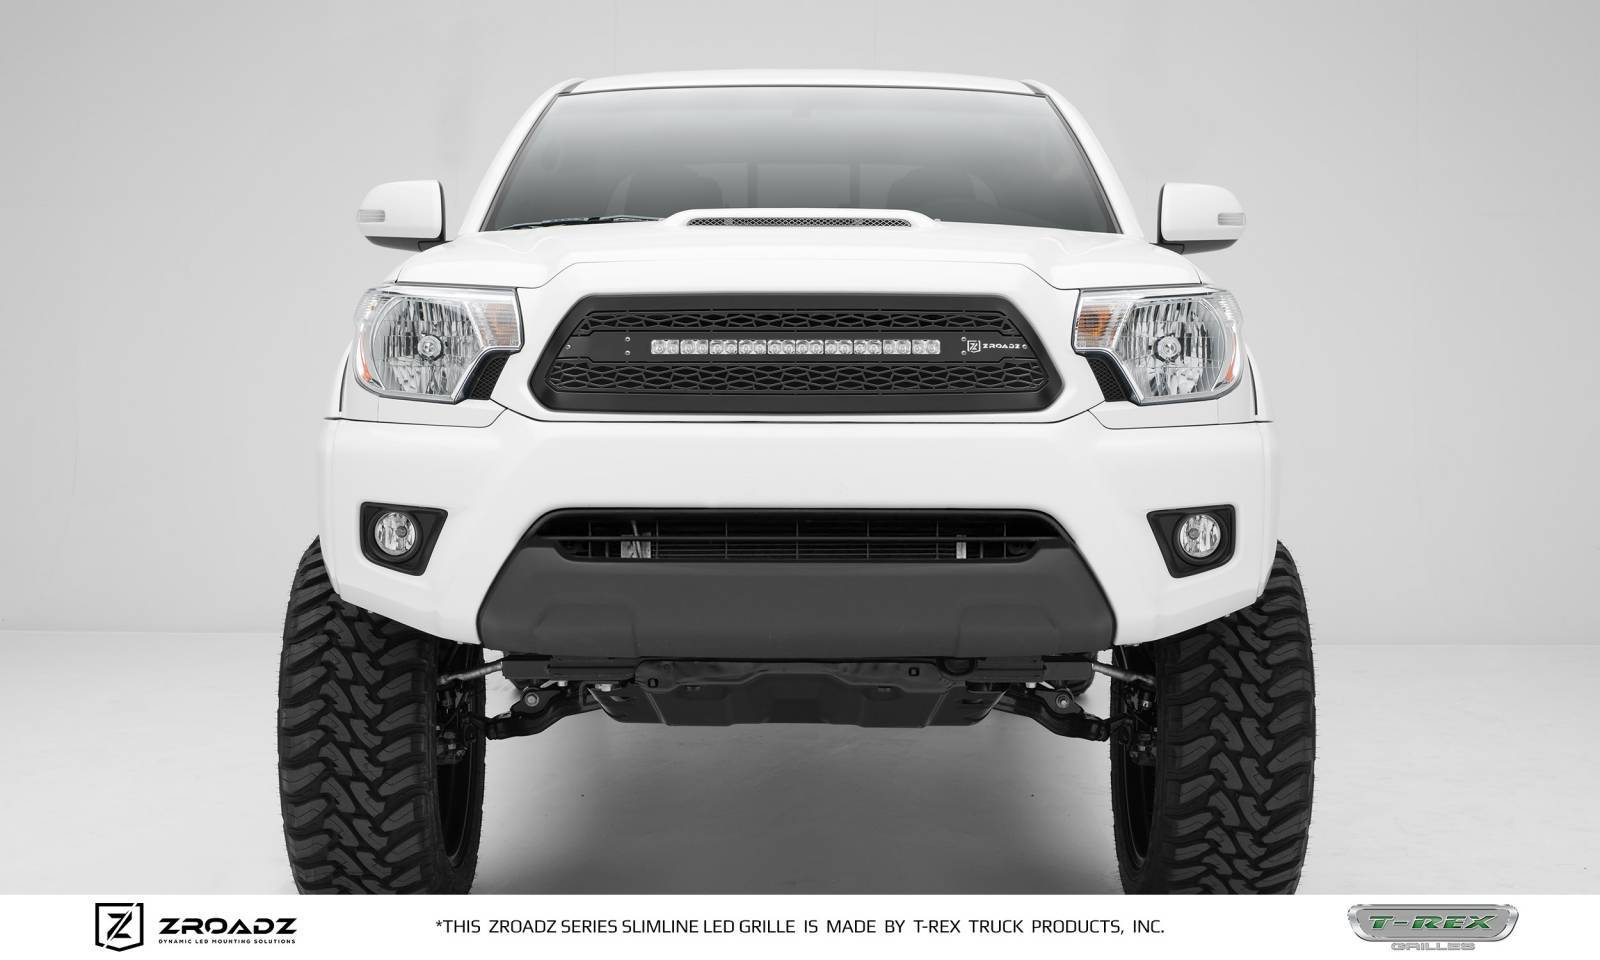 T-REX Grilles - 2012-2015 Toyota Tacoma Main Grille, Including (1) 20 Inch ZROADZ LED Straight Single Row Slim Light Bar - Z319381